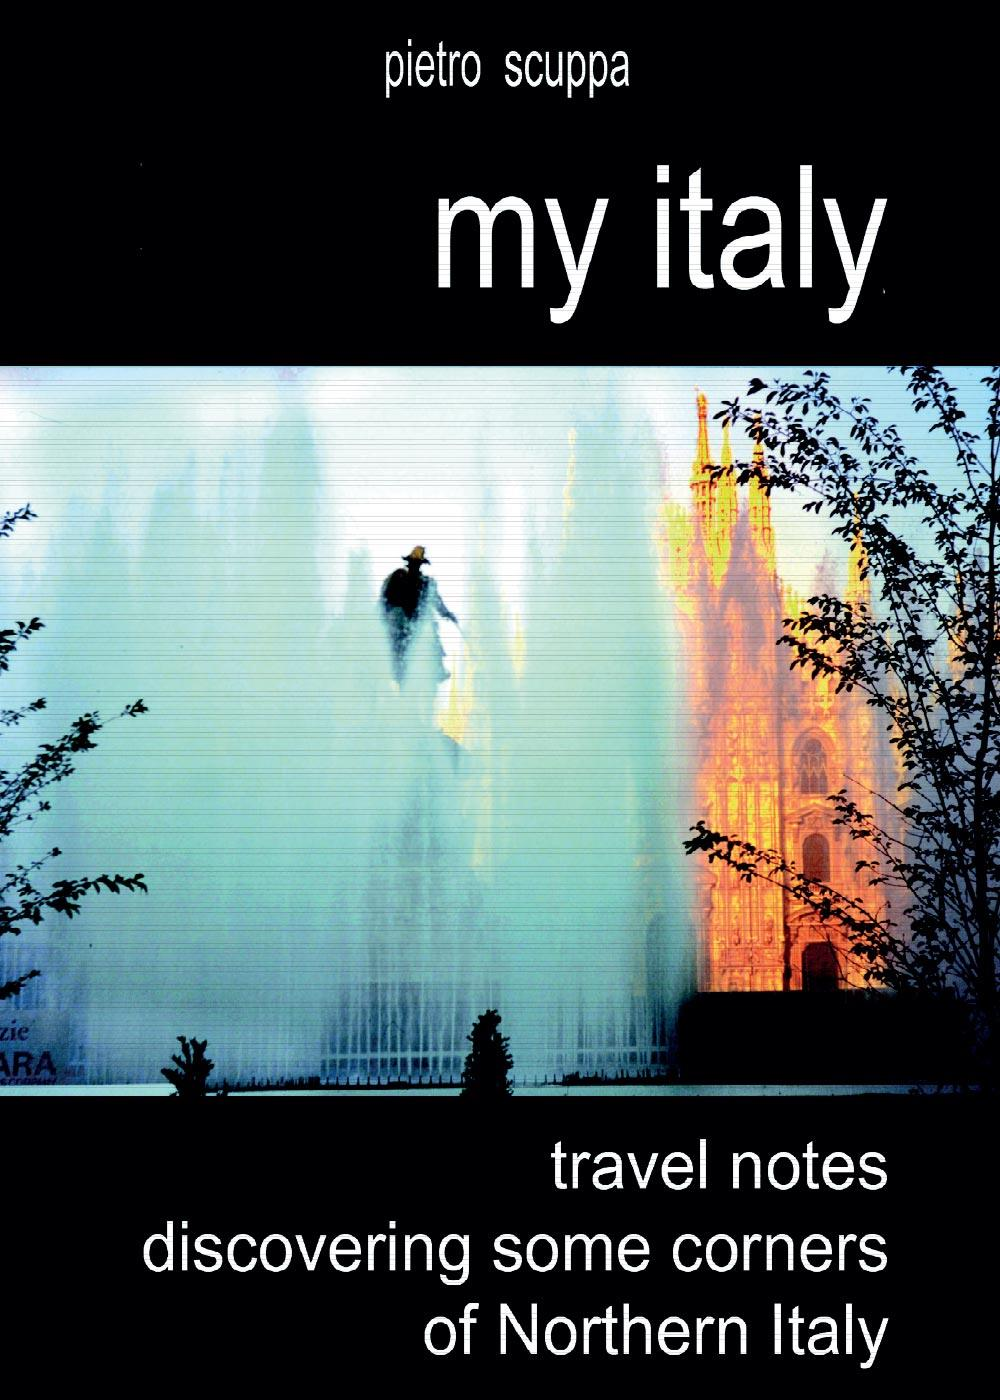 My Italy. Travel notes discovering some corners of Northern Italy